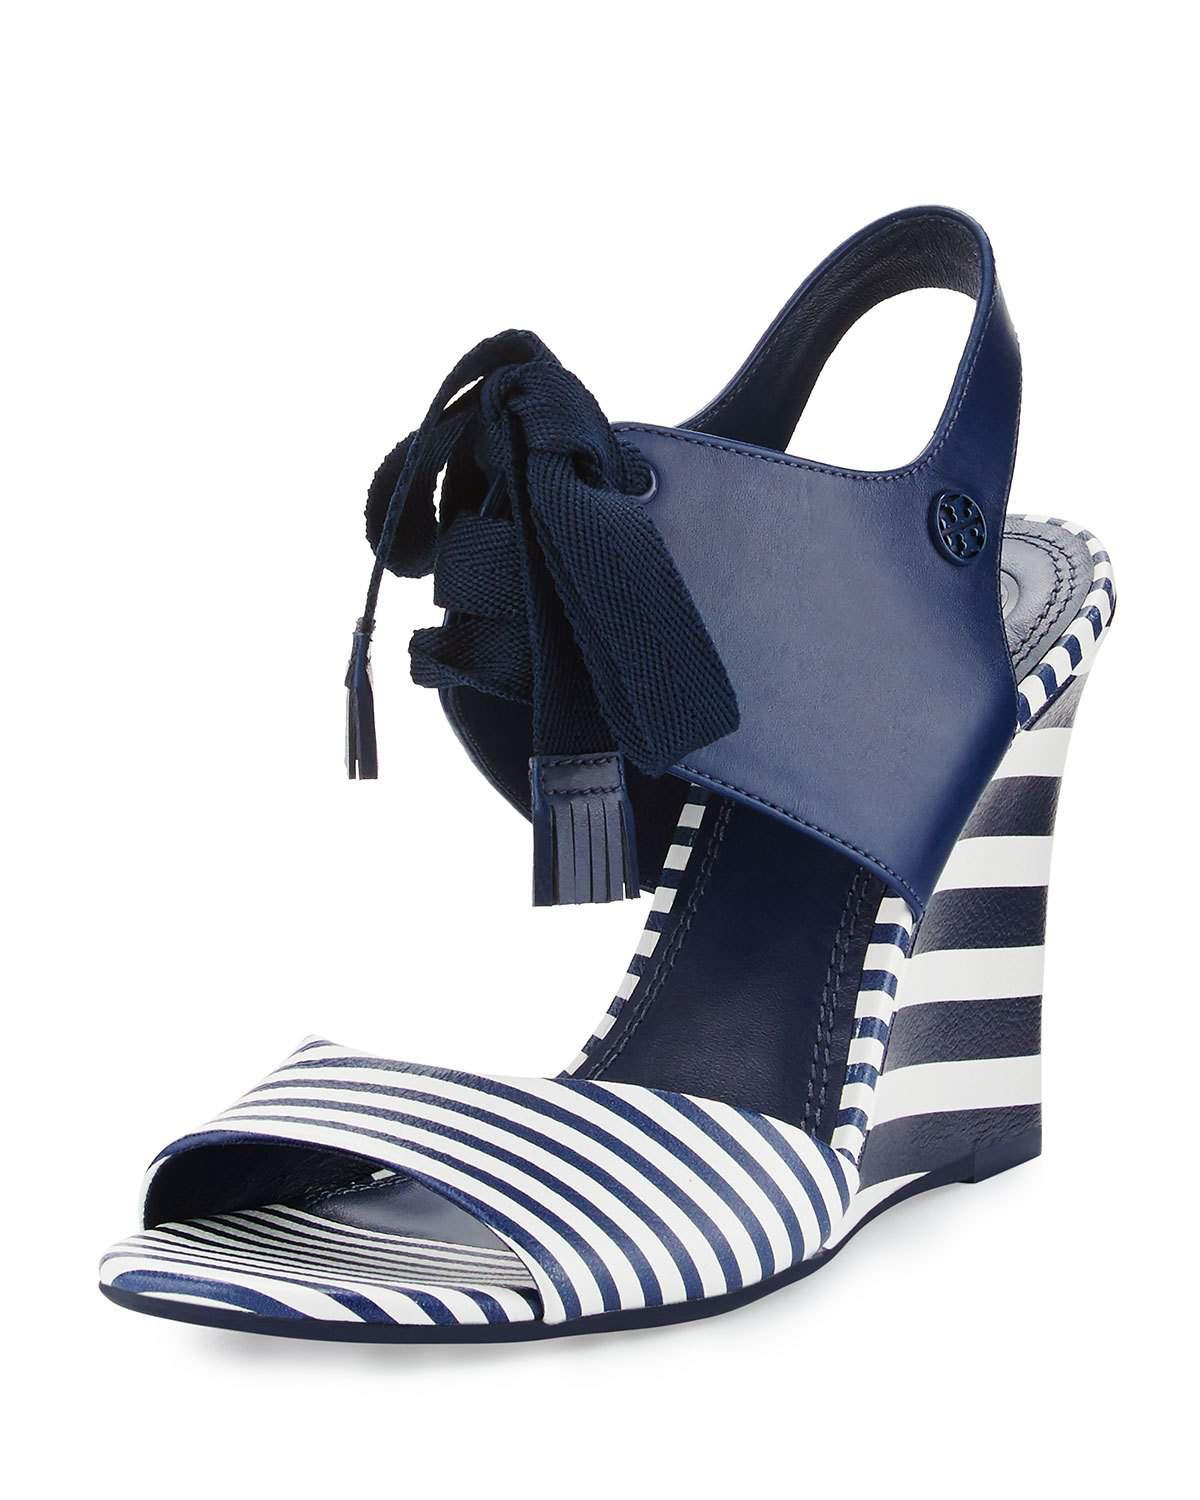 Tory Burch Leather Maritime Striped